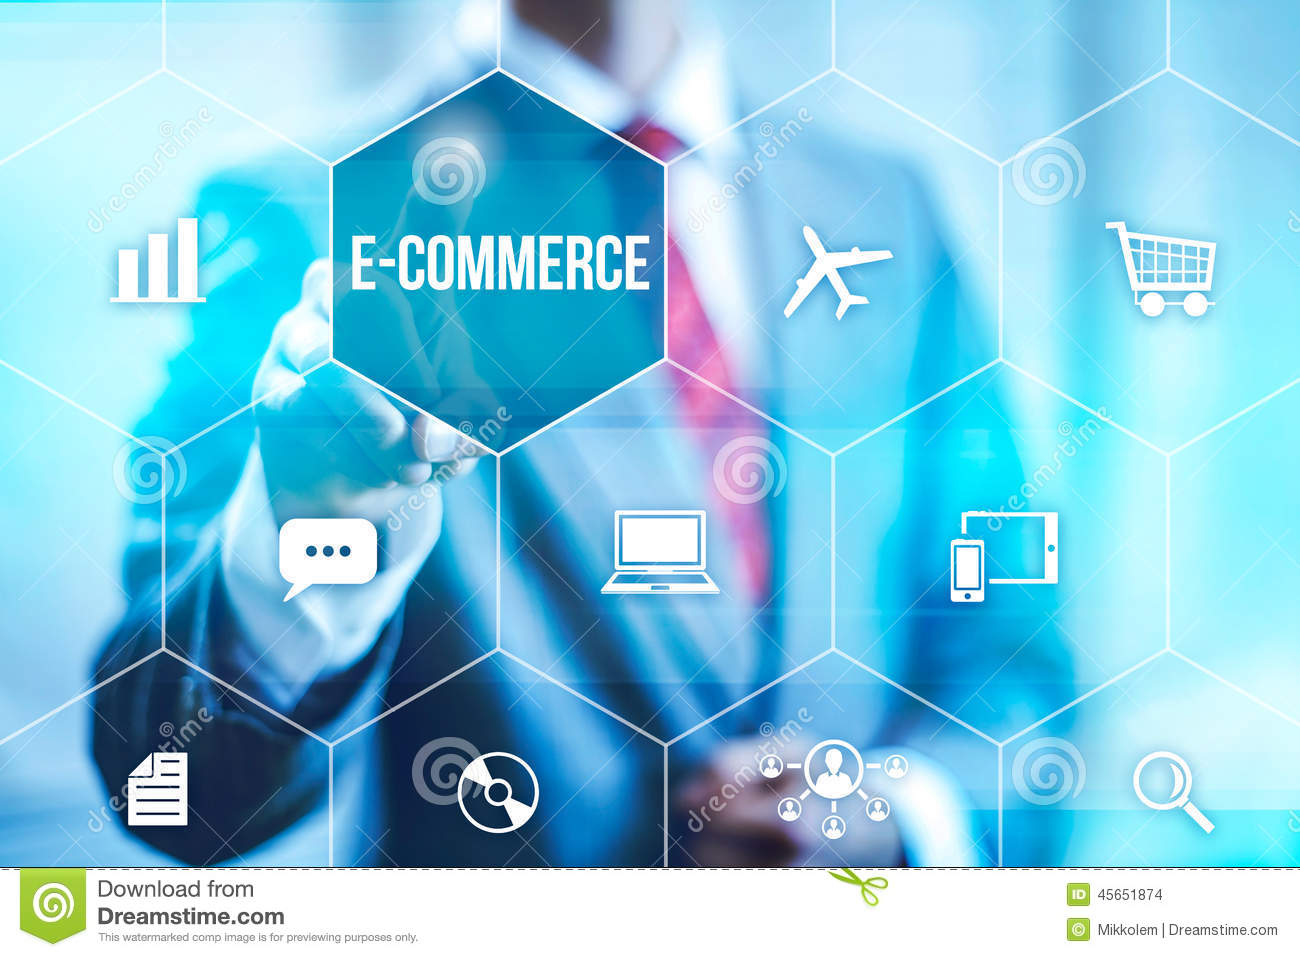 an introduction to the future of e commerce E-commerce is changing day by day, but what is driving this change 3 trends redefining the future of e-commerce apply for the inc 5000 vision 2020.